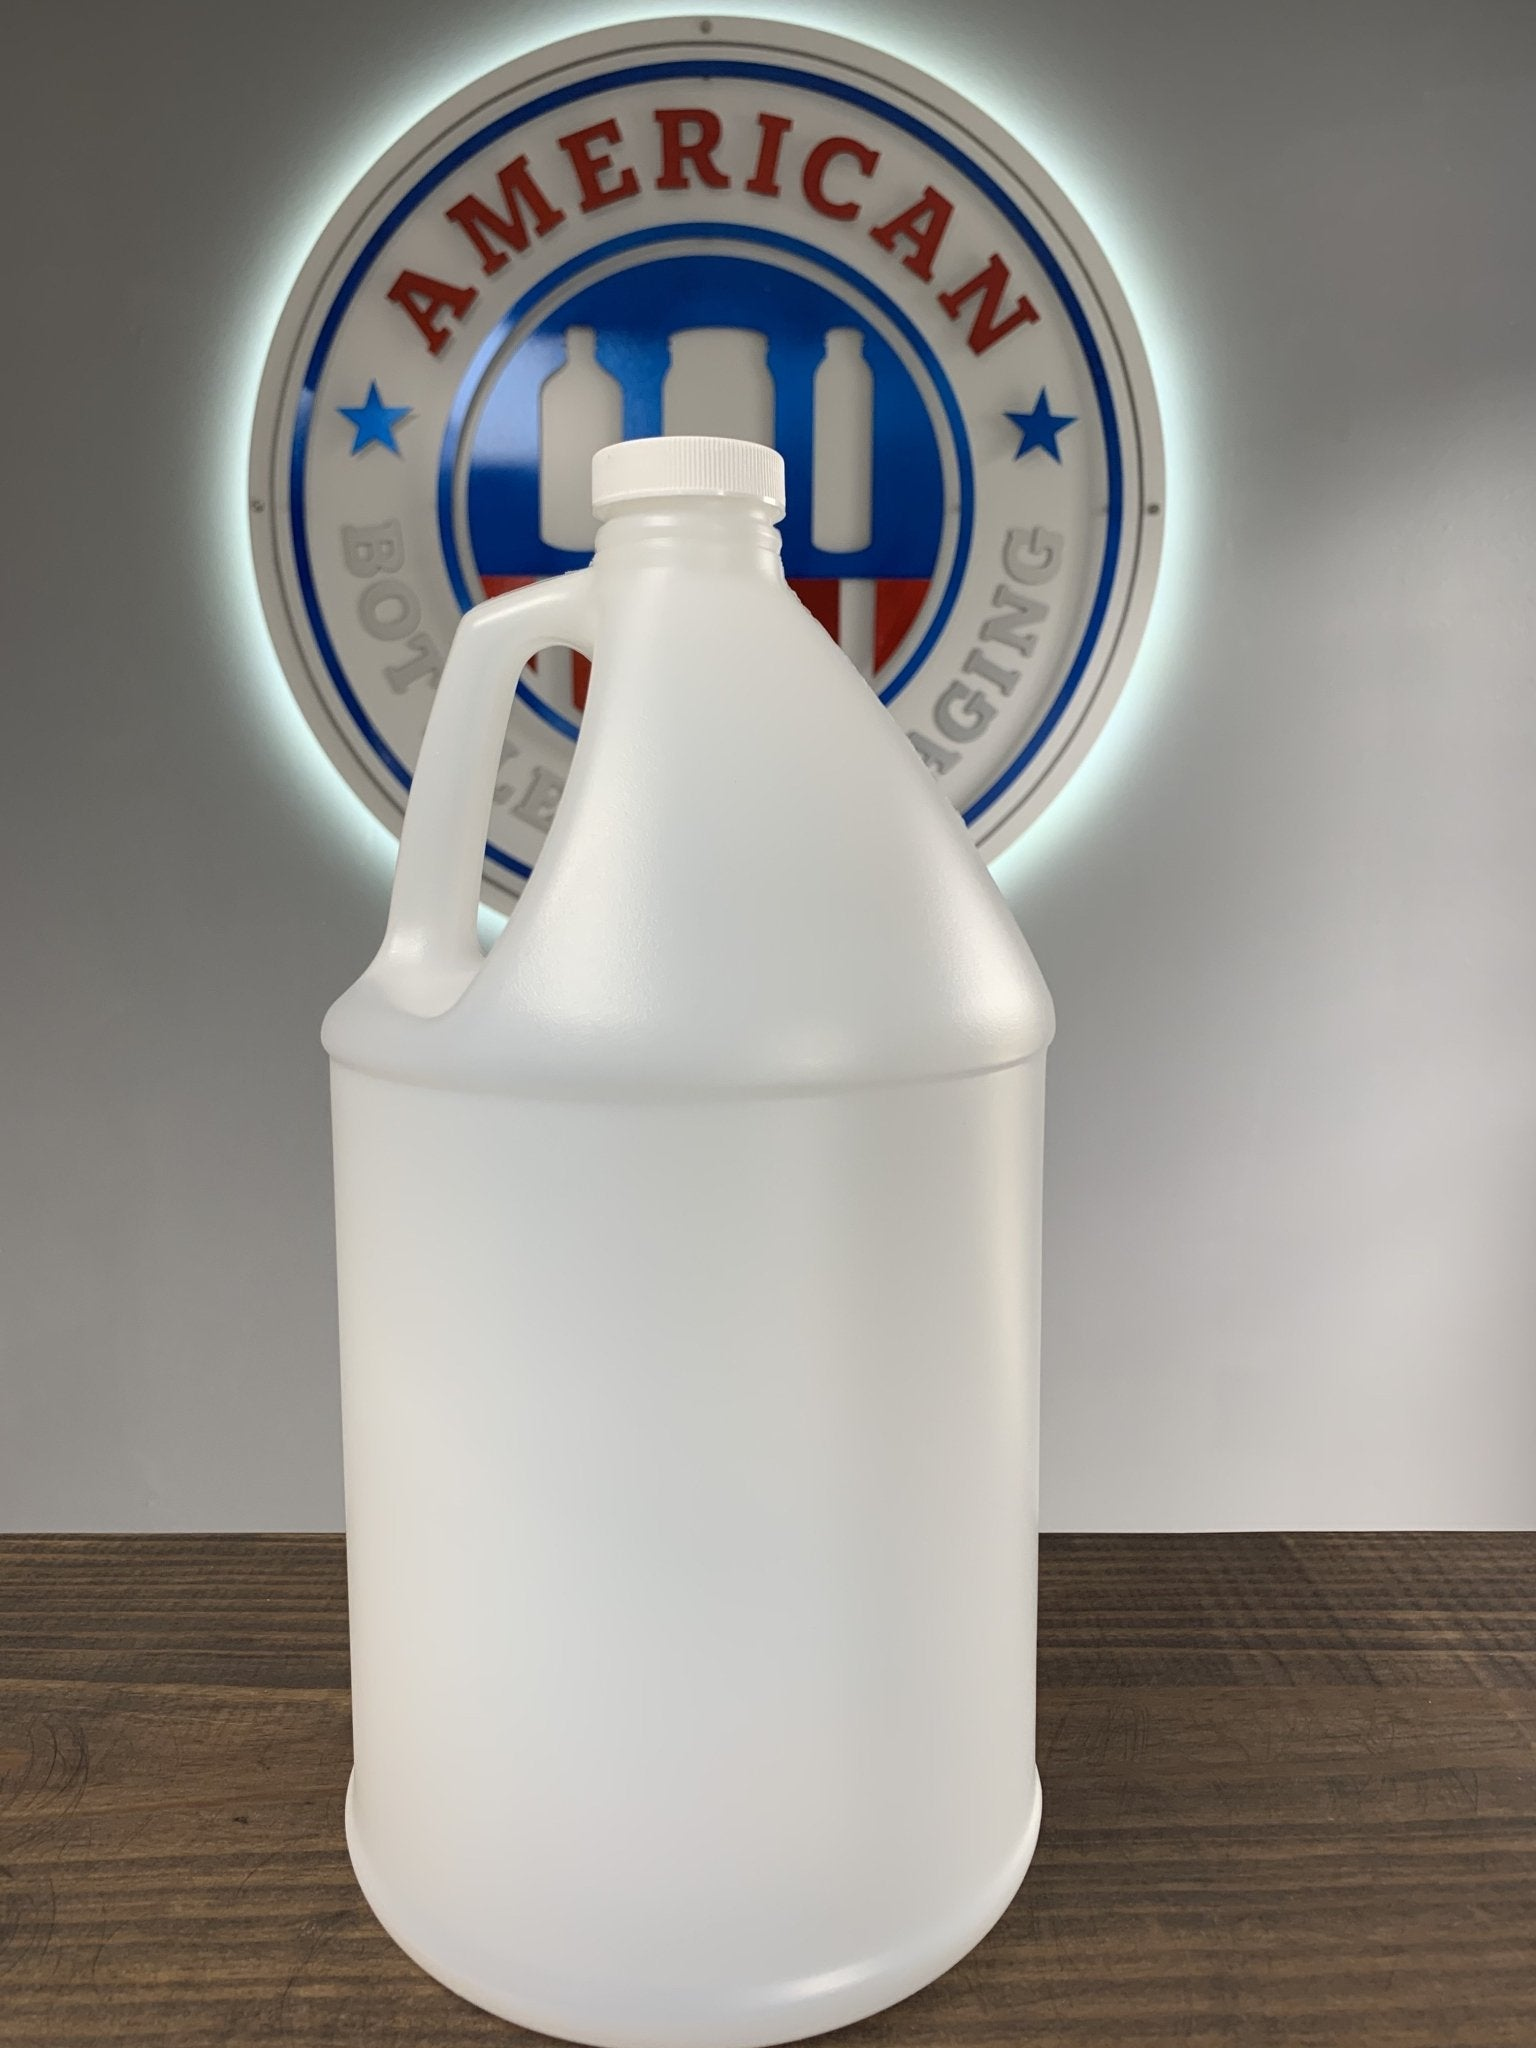 1 Gallon Industrial Round Natural Bottle with 38-400 Neck and White Ribbed Foam Lined Cap - 12,000 per Truckload - Floor Stacked - Rock Bottom Bottles / Packaging Company LLC